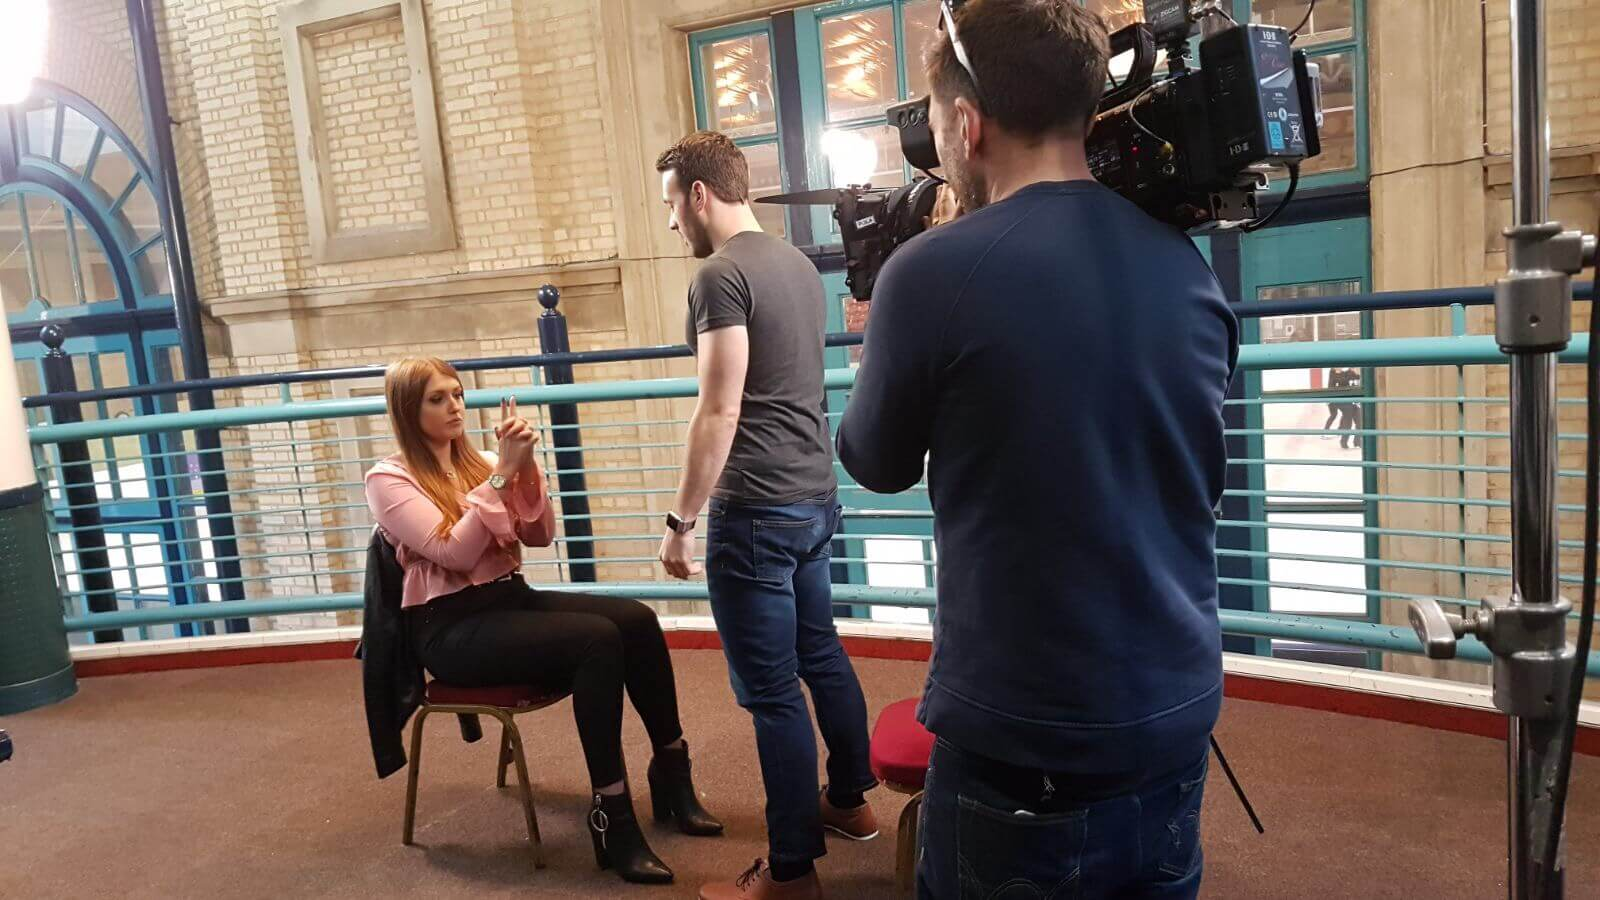 Manchester hypnotist aaron calvert hypnotising girl for channel 4 tv show